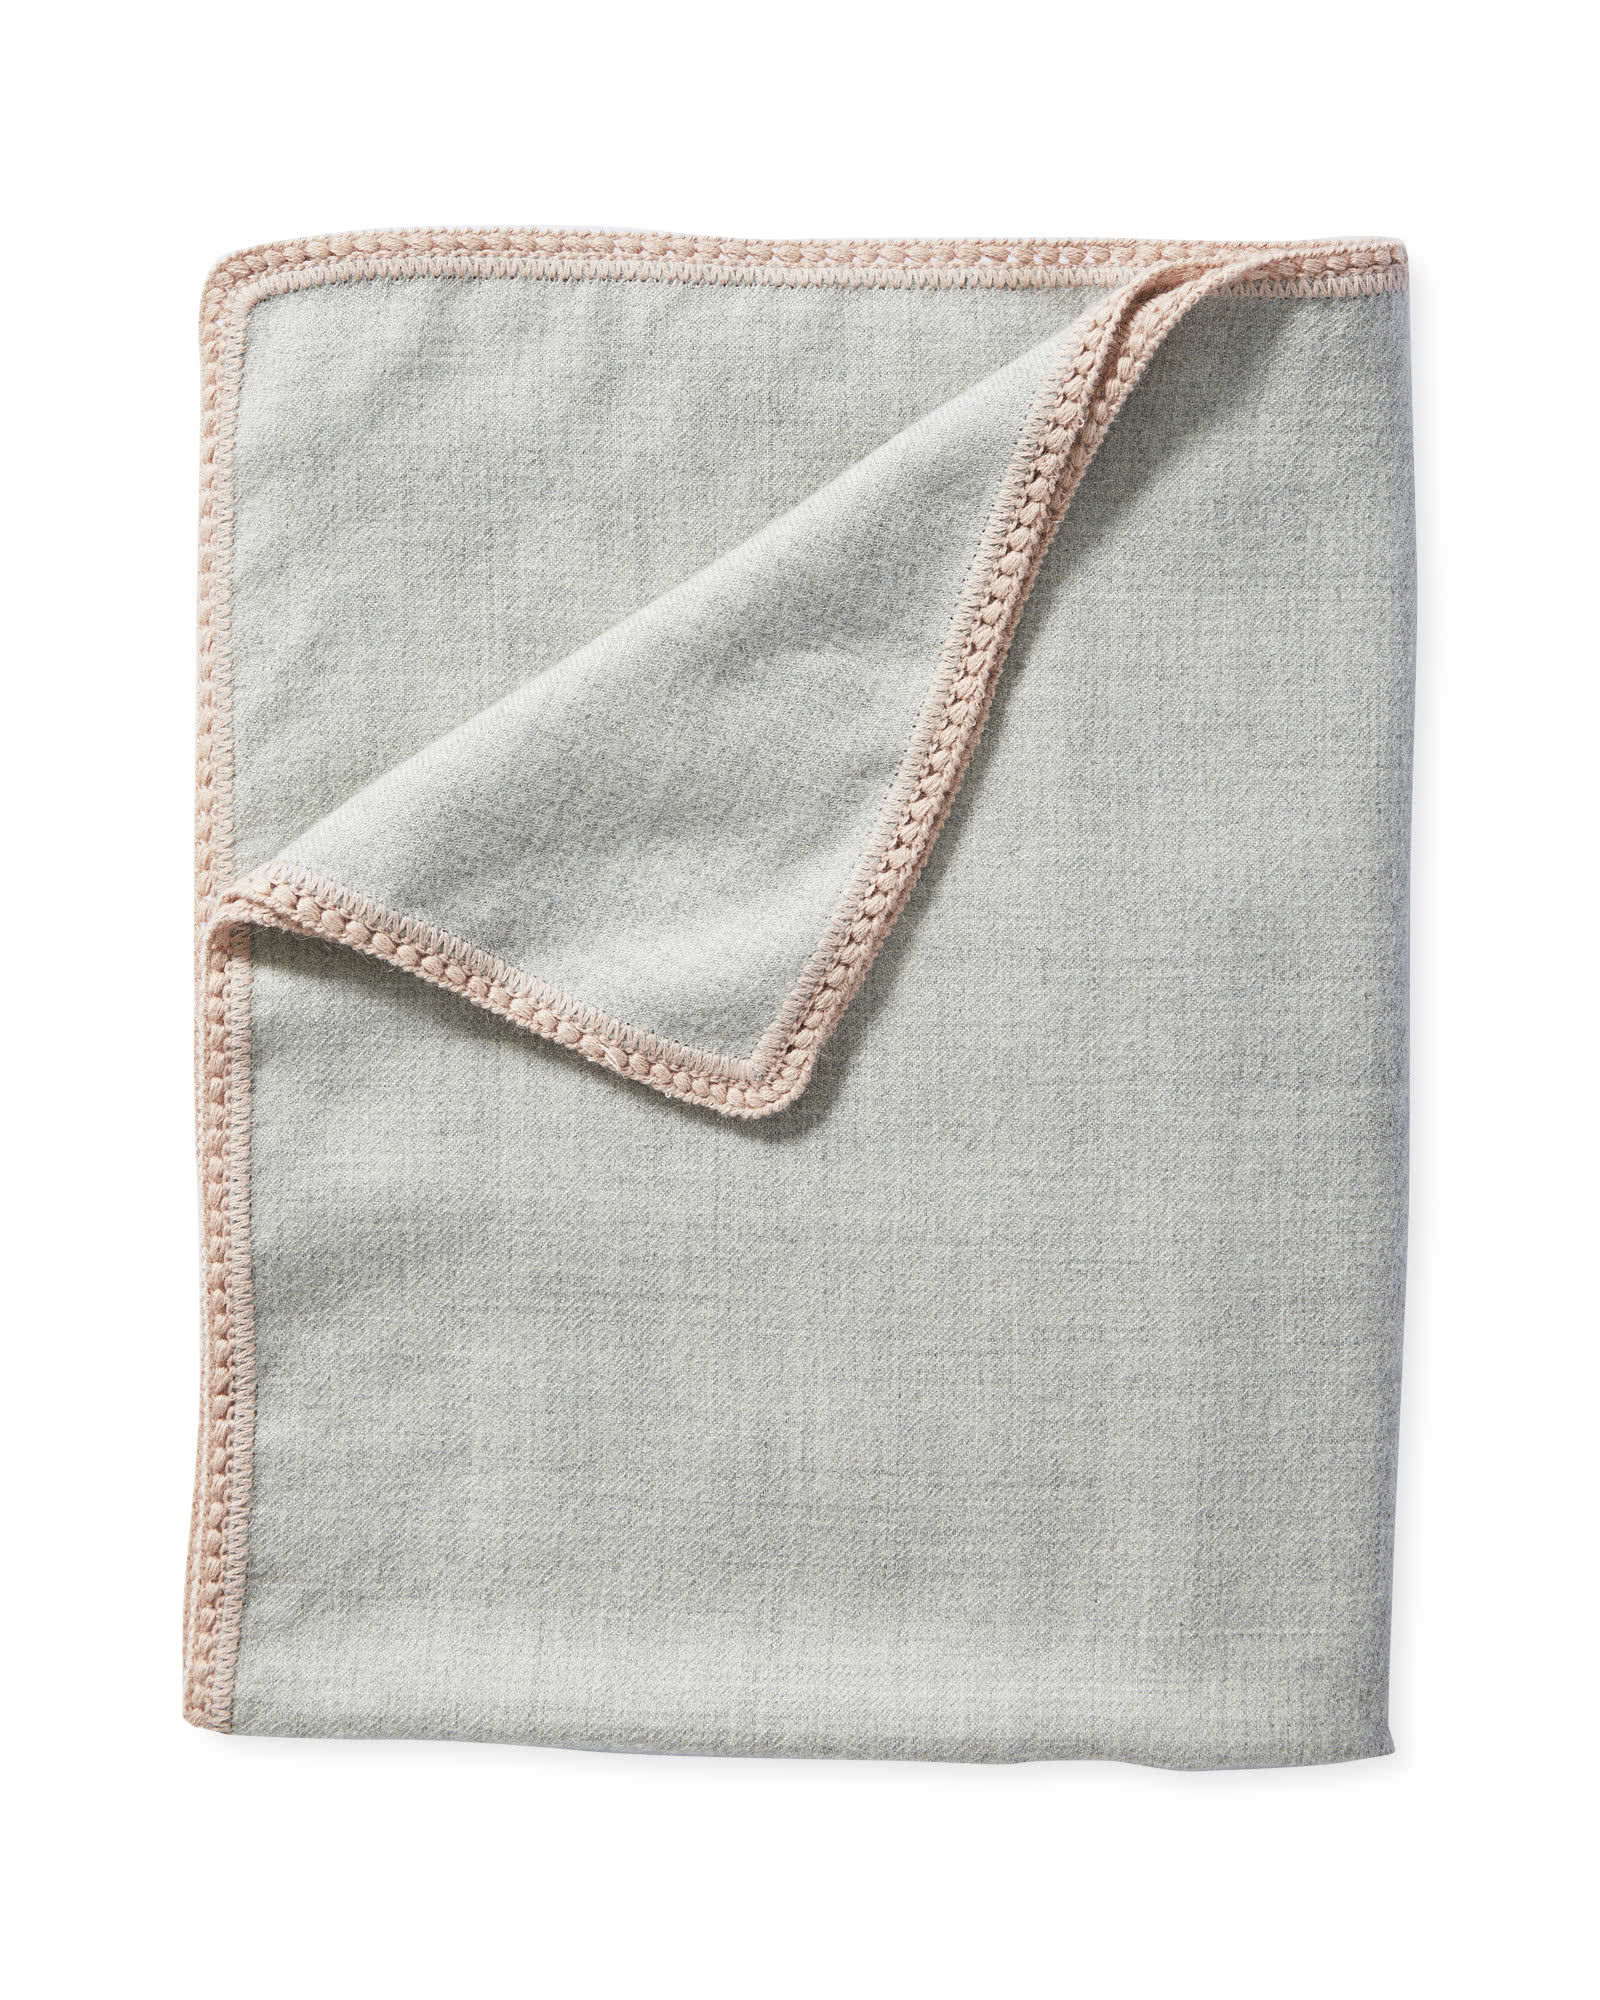 Summit Mini Blanket, Grey/Pink